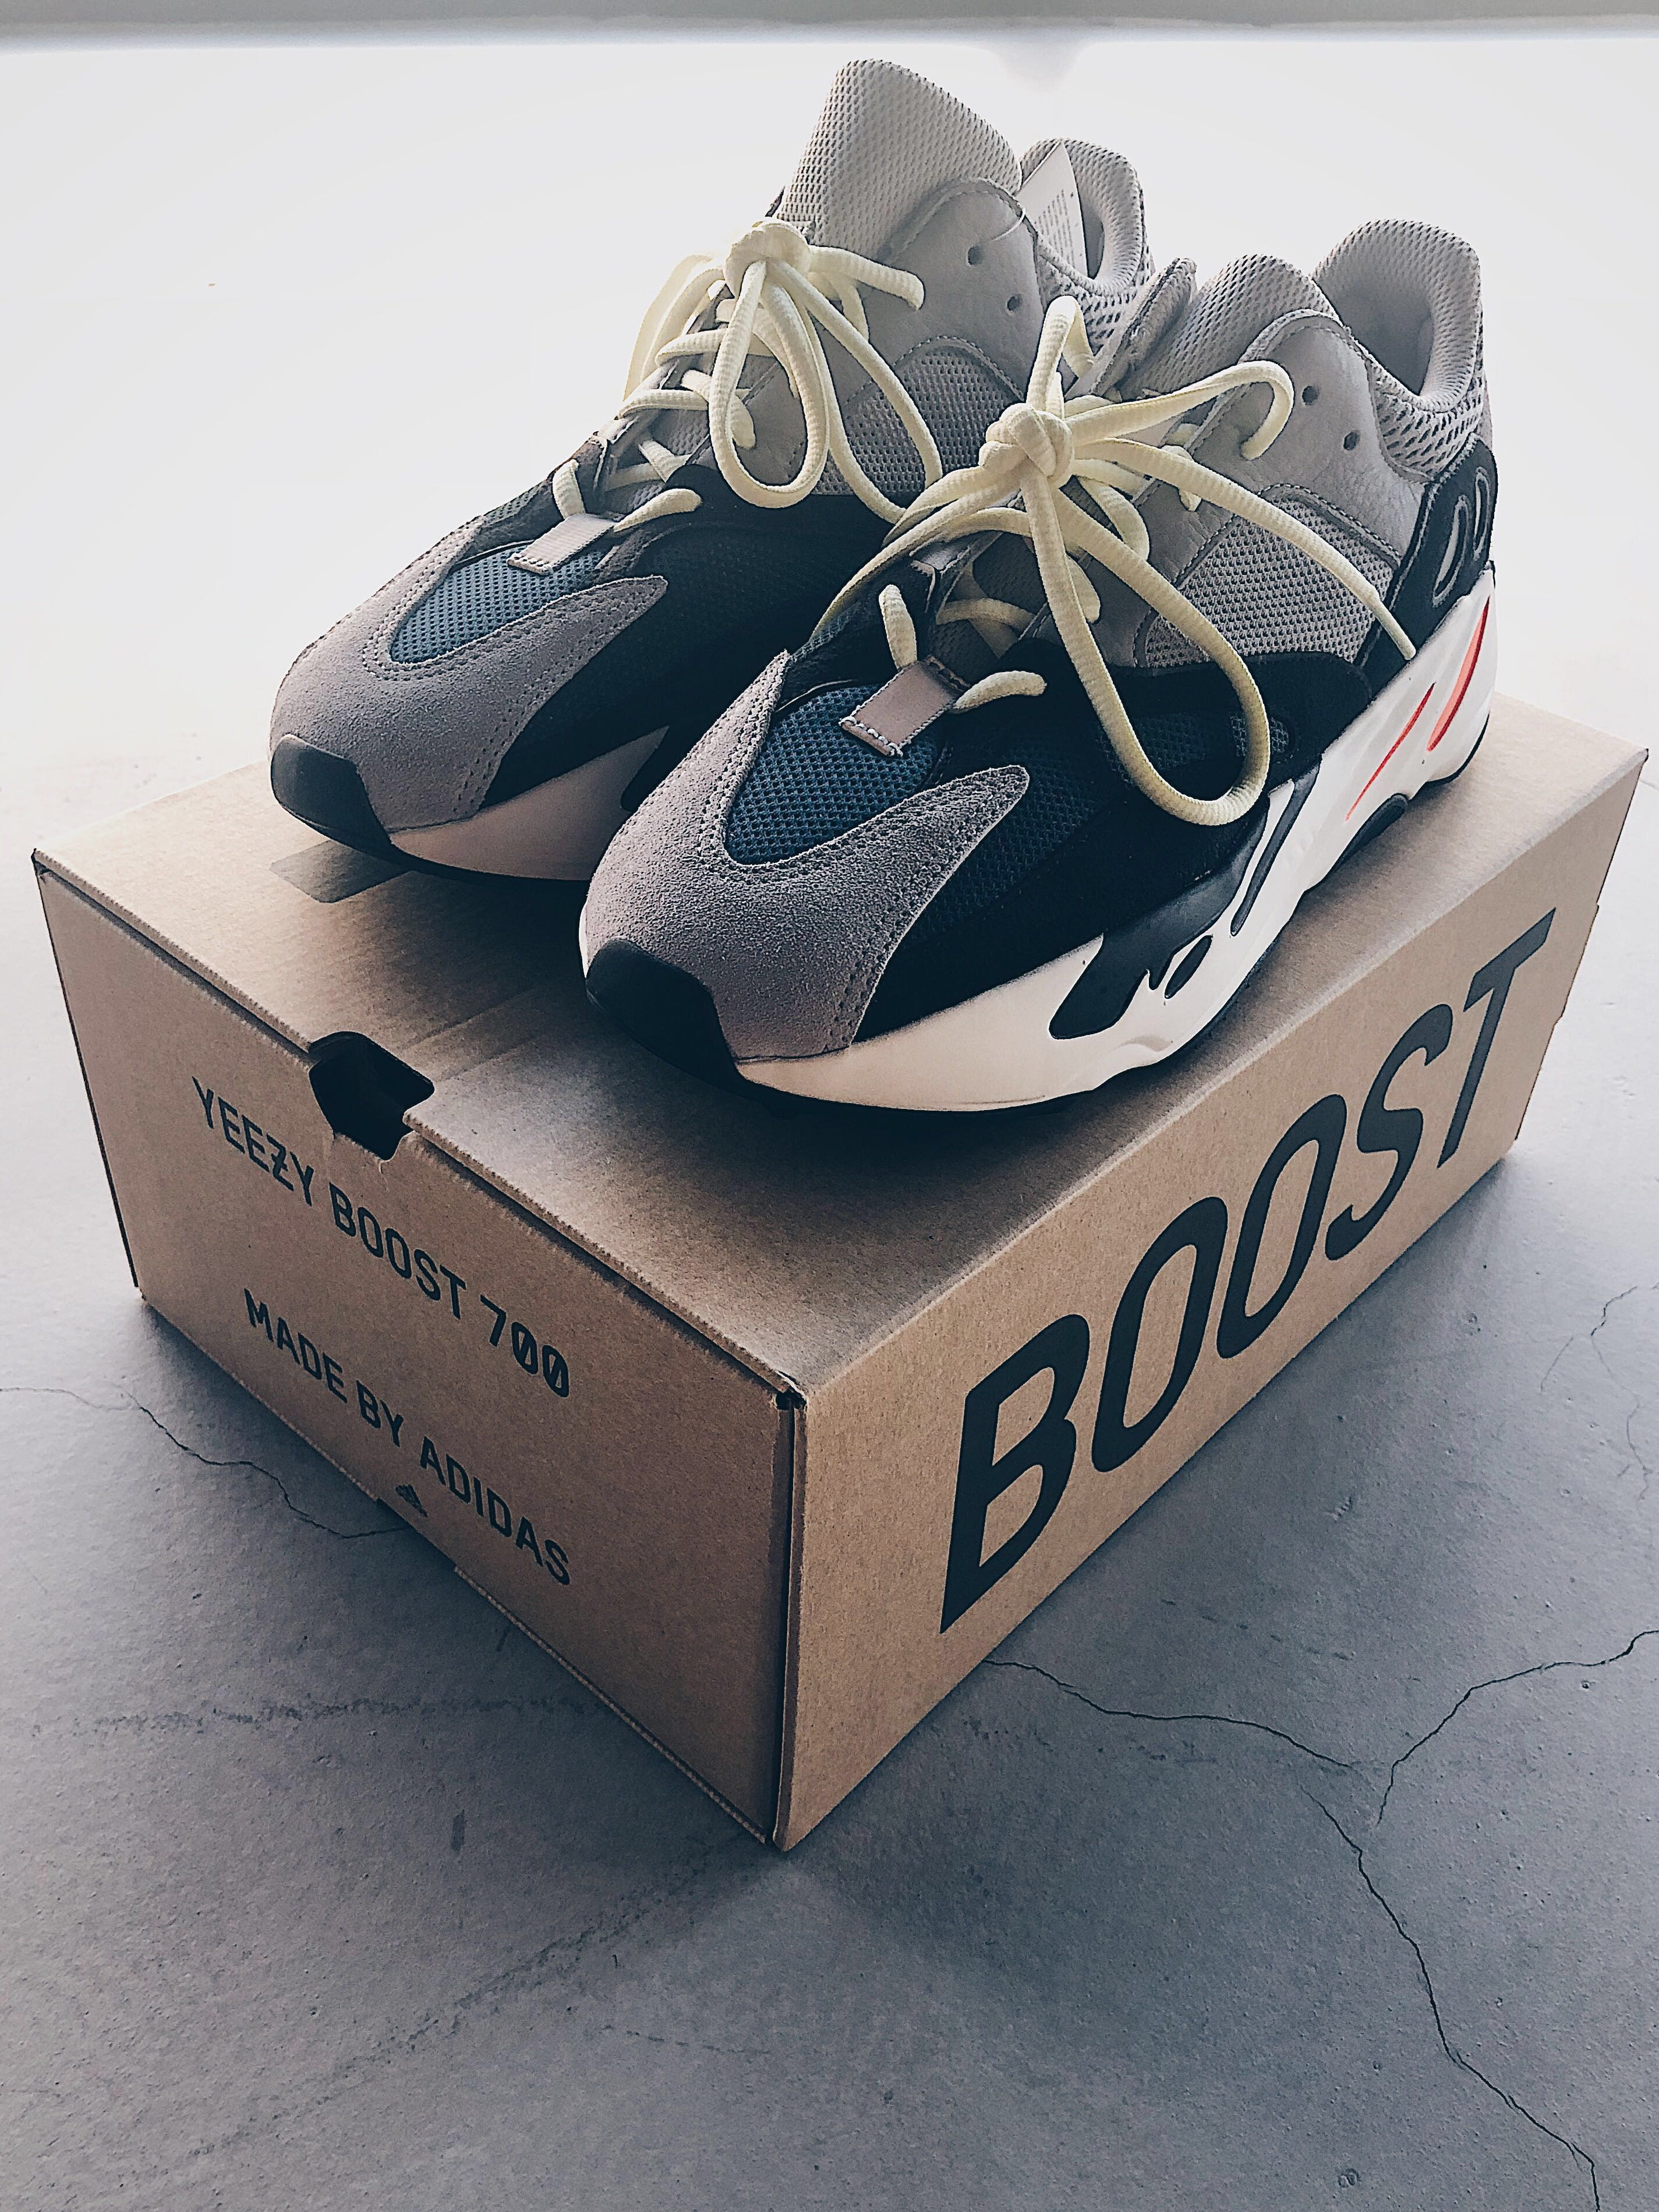 e1aa06c79277c WTS  ADIDAS YEEZY BOOST 700 WAVE RUNNER UK 9